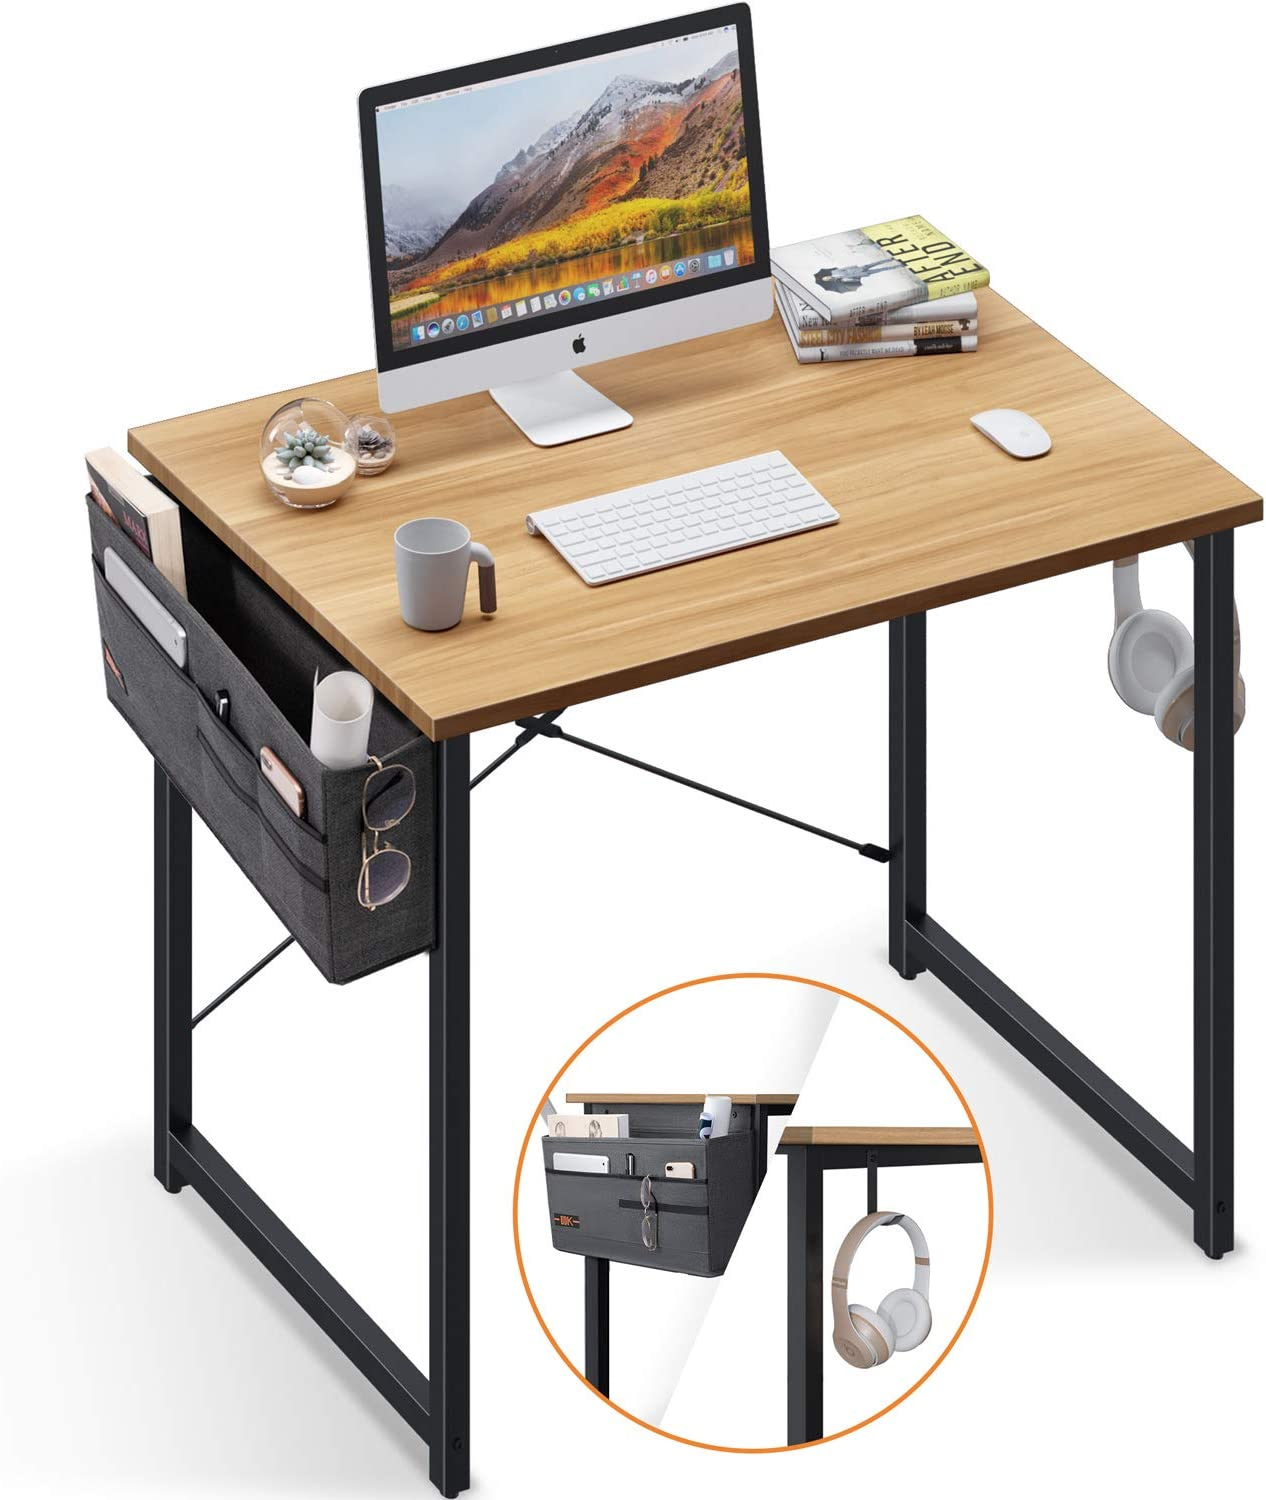 Computer Writing Desk 31 inch, Sturdy Home Office Table, Work Desk with A Storage Bag and Headphone Hook, Walnut